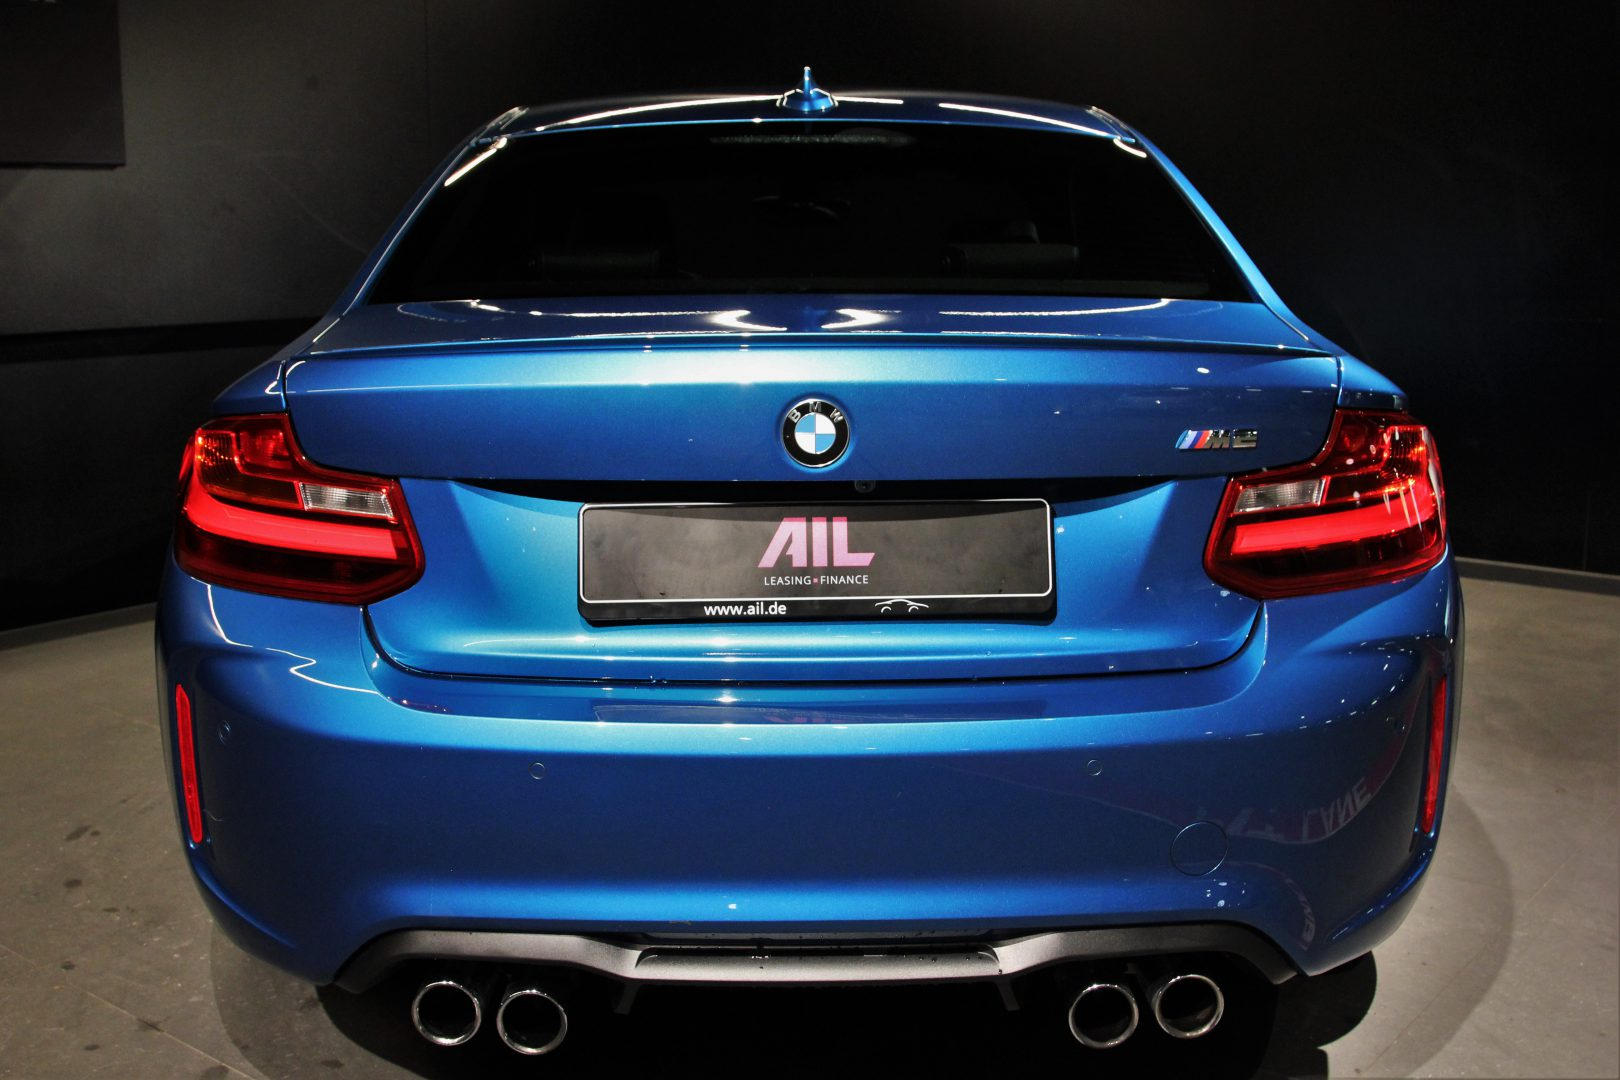 AIL BMW M2 LONG BEACH BLUE DKG  5